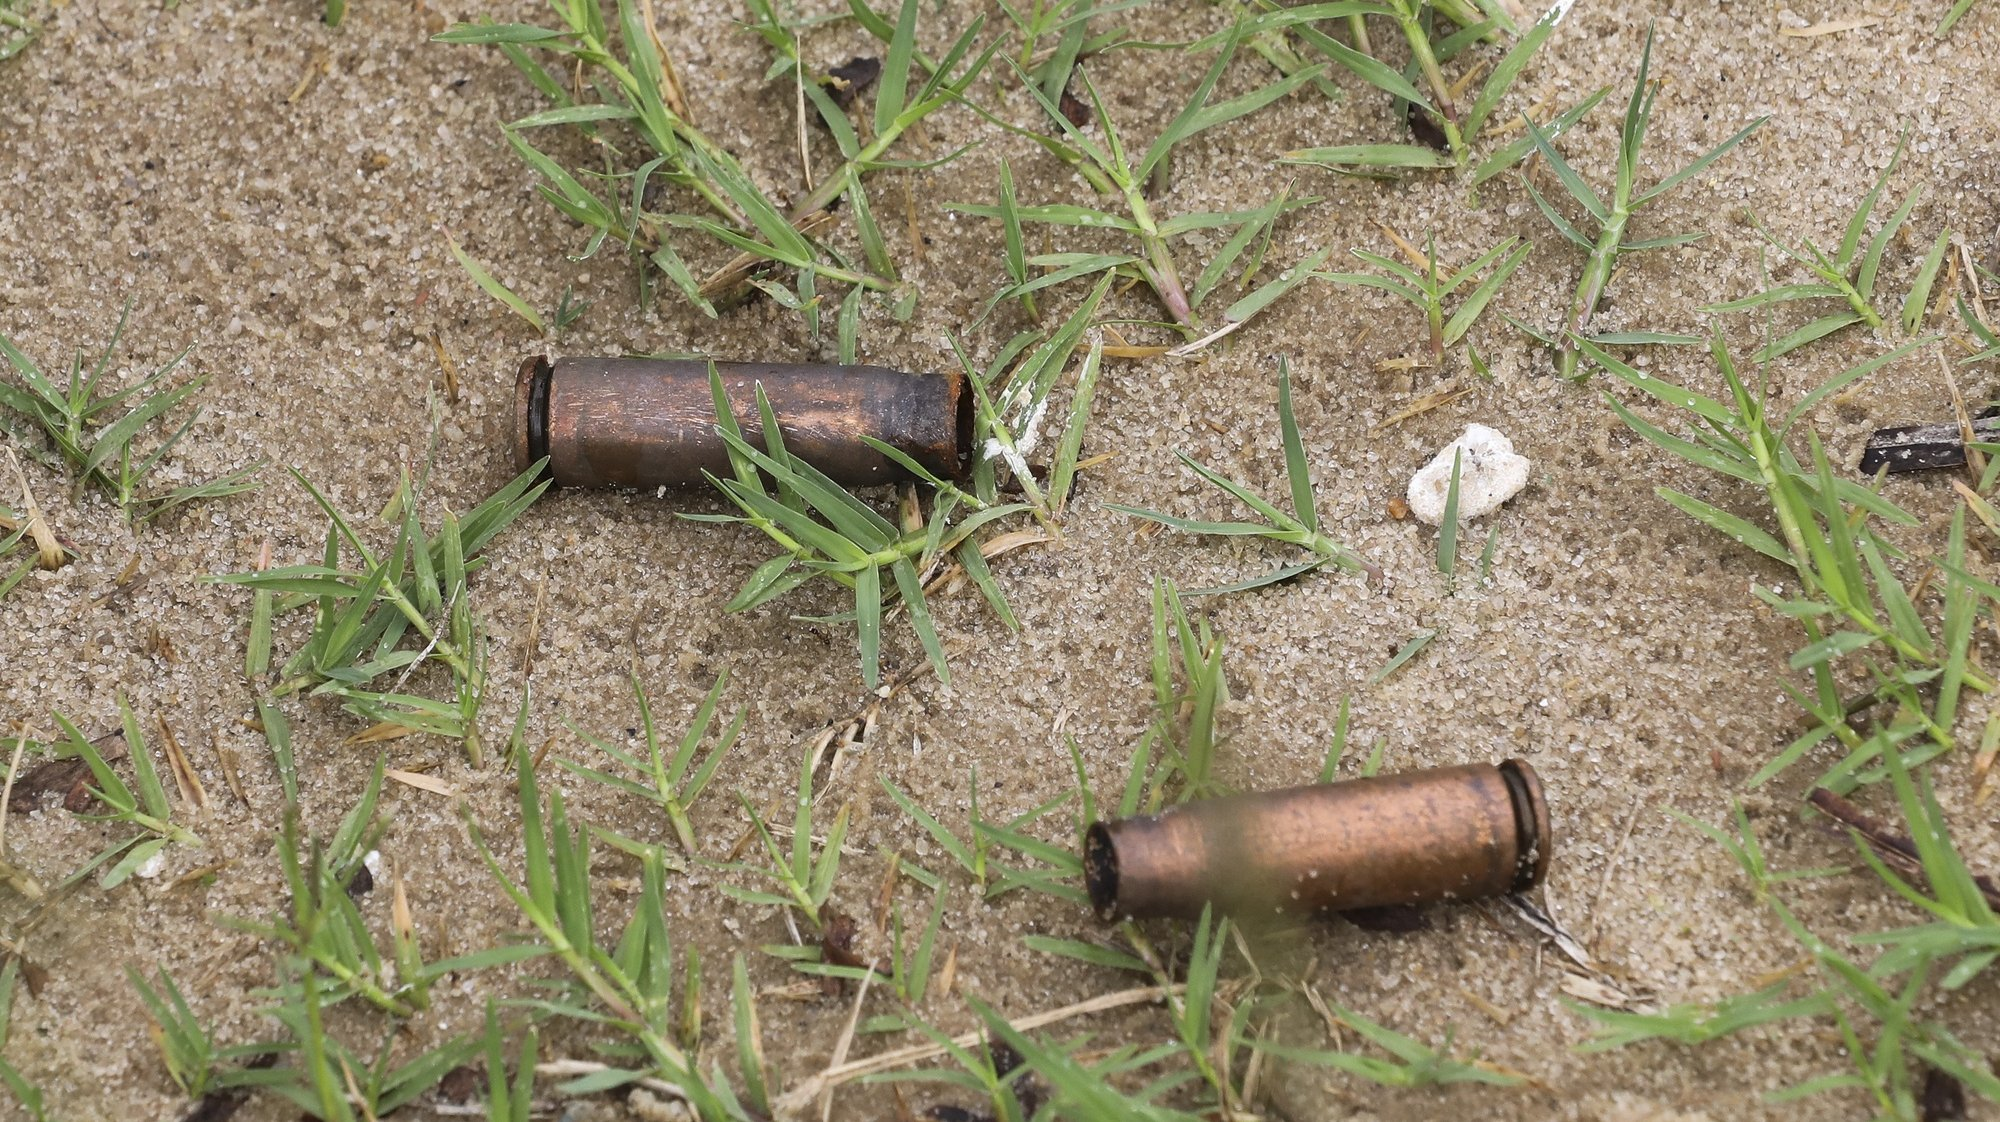 epa09131133 Spent AK rifle capsules in the street of Palma, Cabo Delgado, Mozambique, 12 April 2021. The violence unleashed more than three years ago in Cabo Delgado province escalated again about two weeks ago, when armed groups first attacked the town of Palma.  EPA/JOAO RELVAS